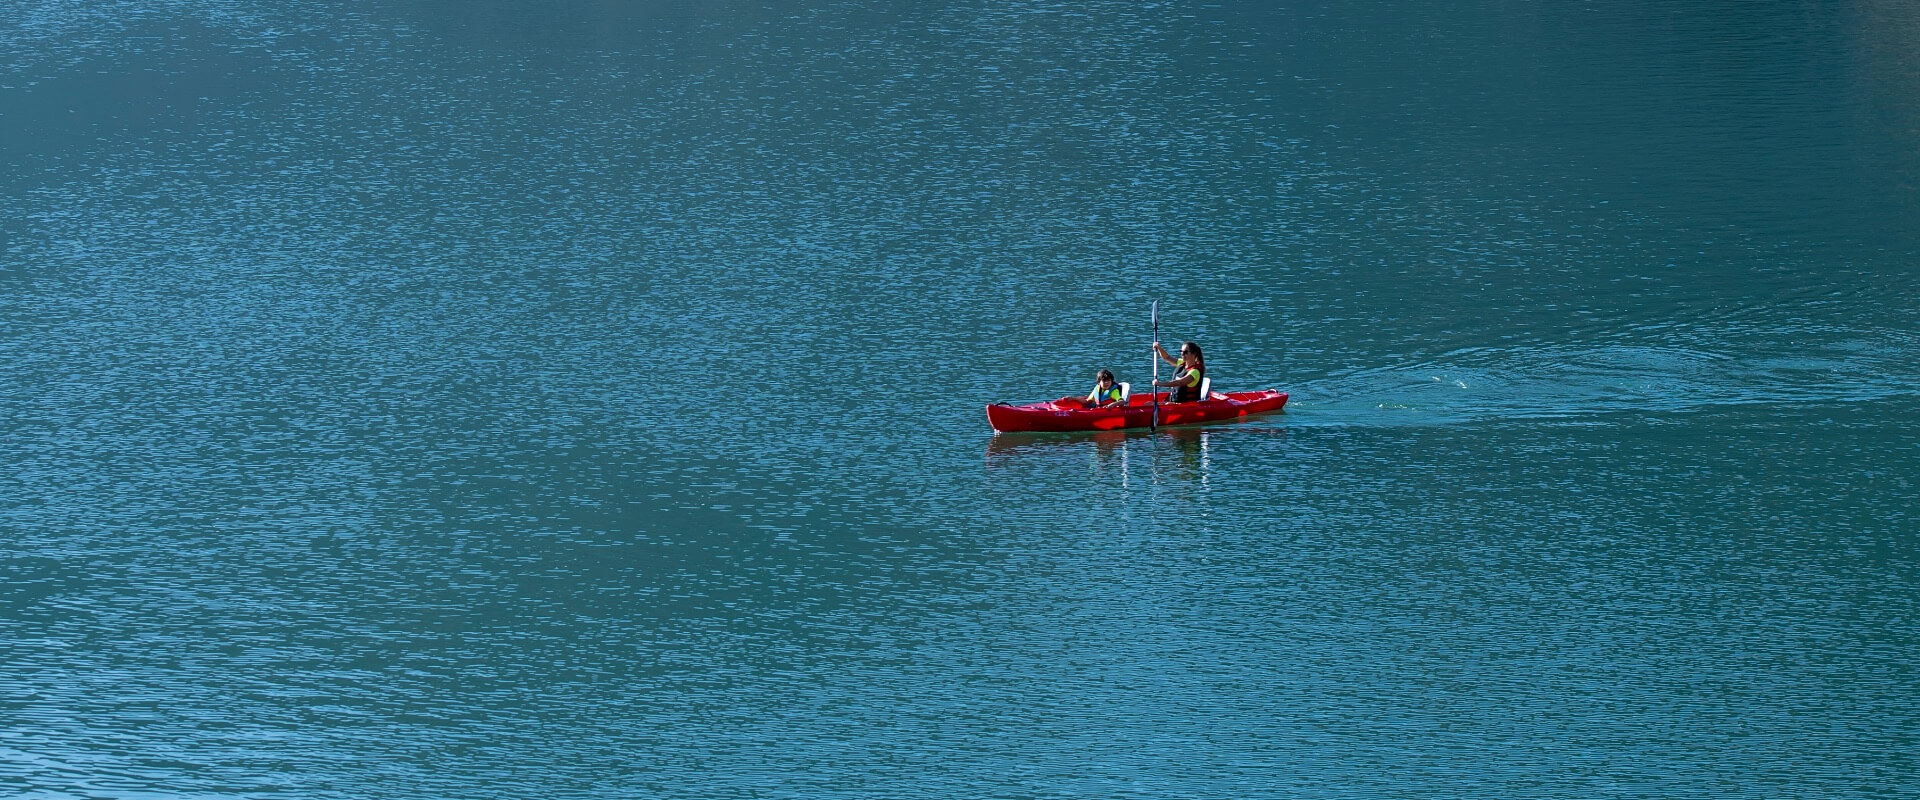 Visit-Hatta-Kayaking-boating